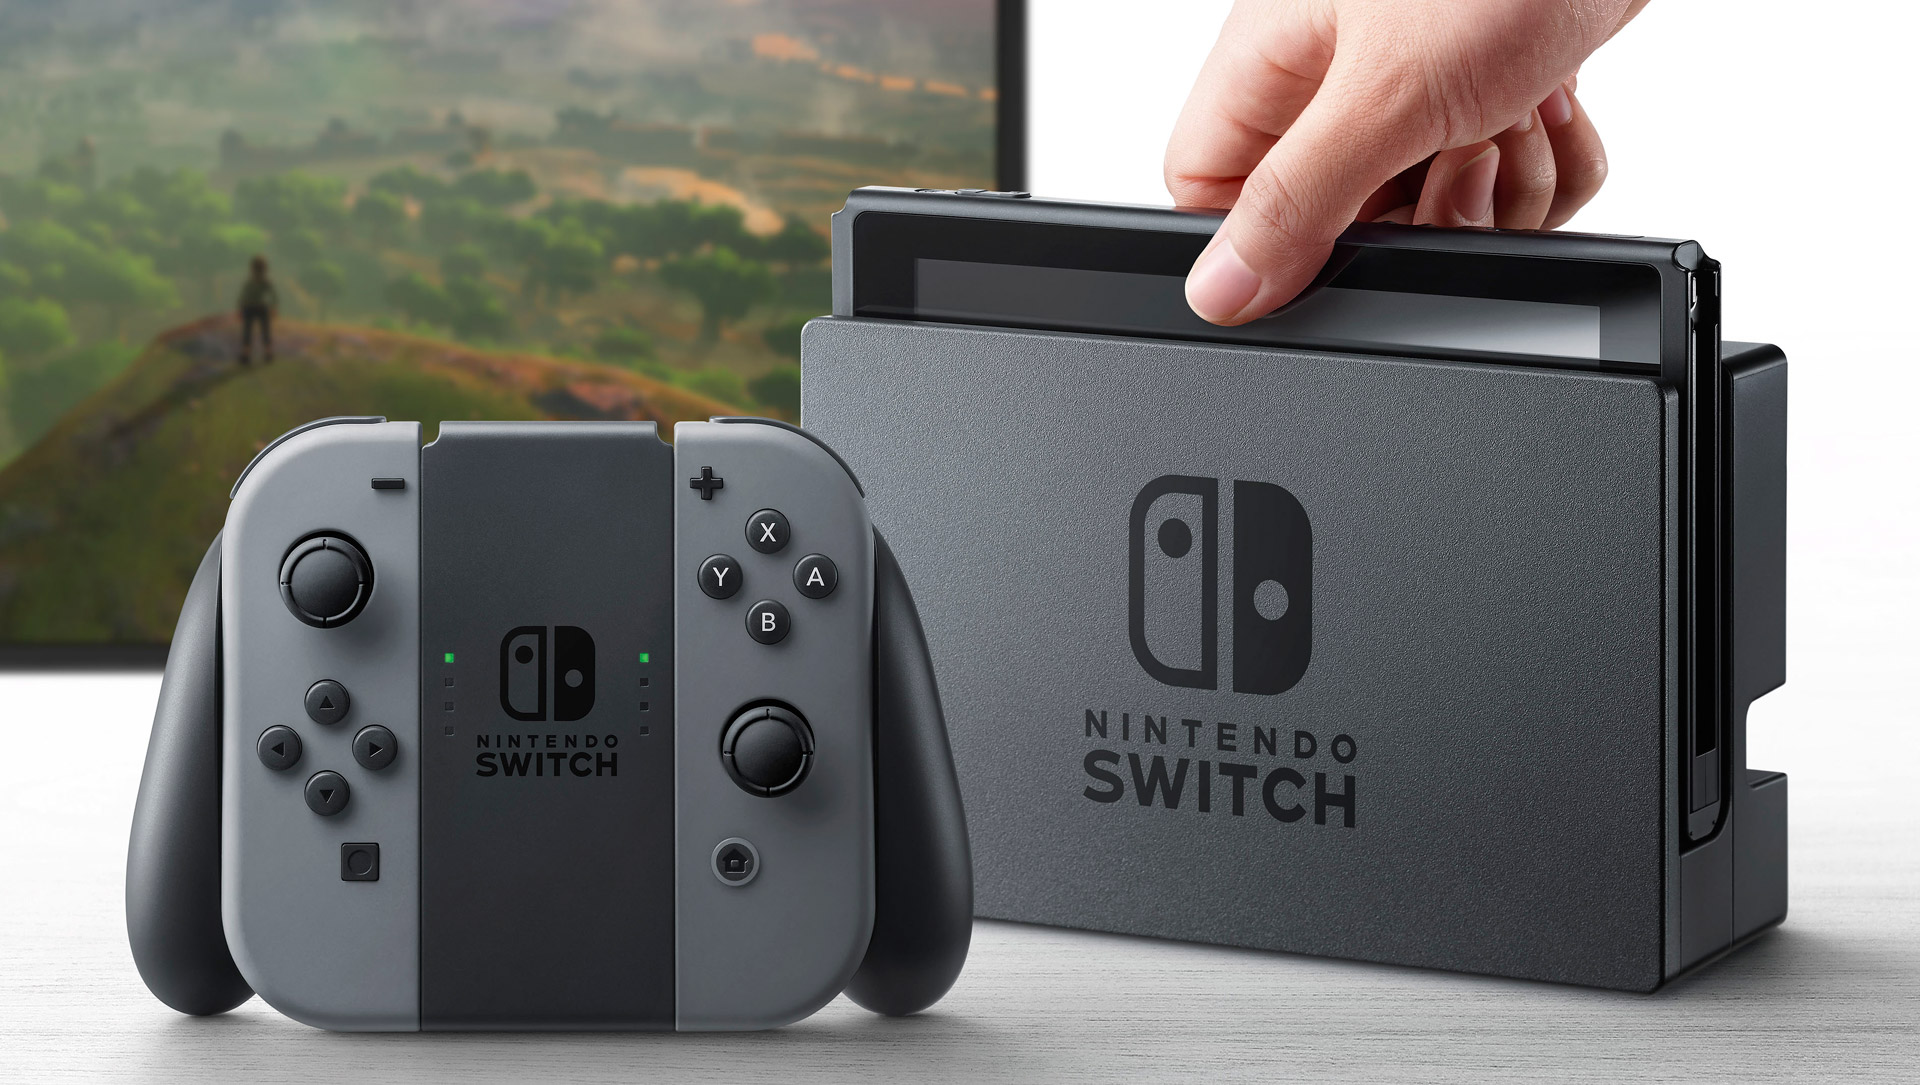 The Nintendo Switch launch lineup is steadily growing in a weird way